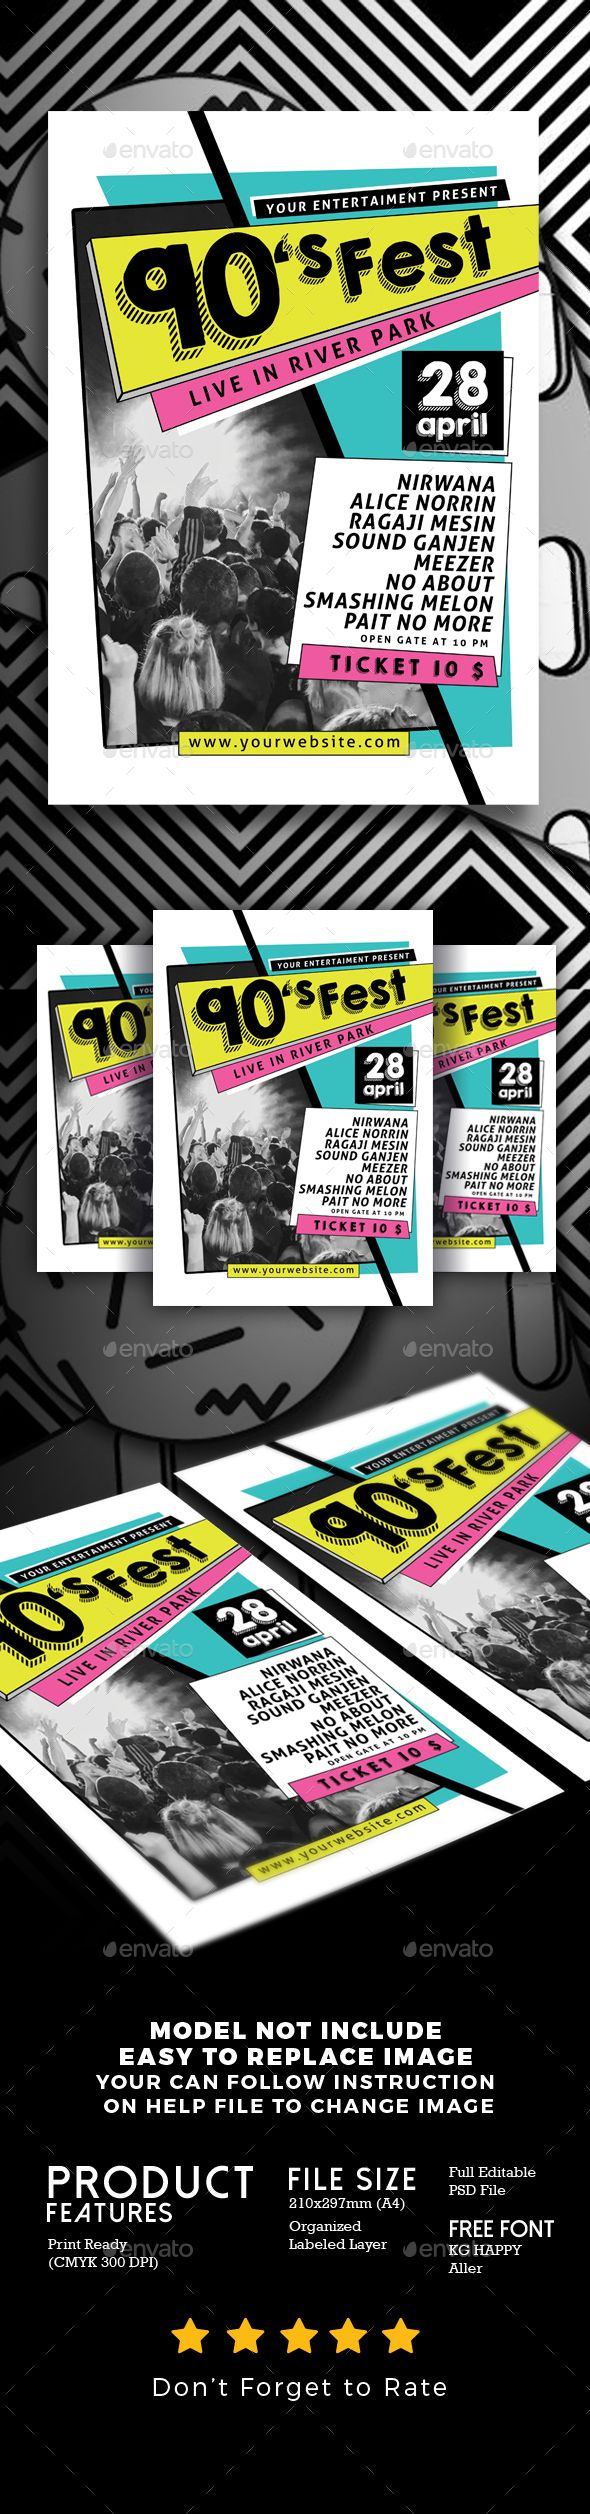 Mysterious poster design with 3d text - 90 S Music Festival